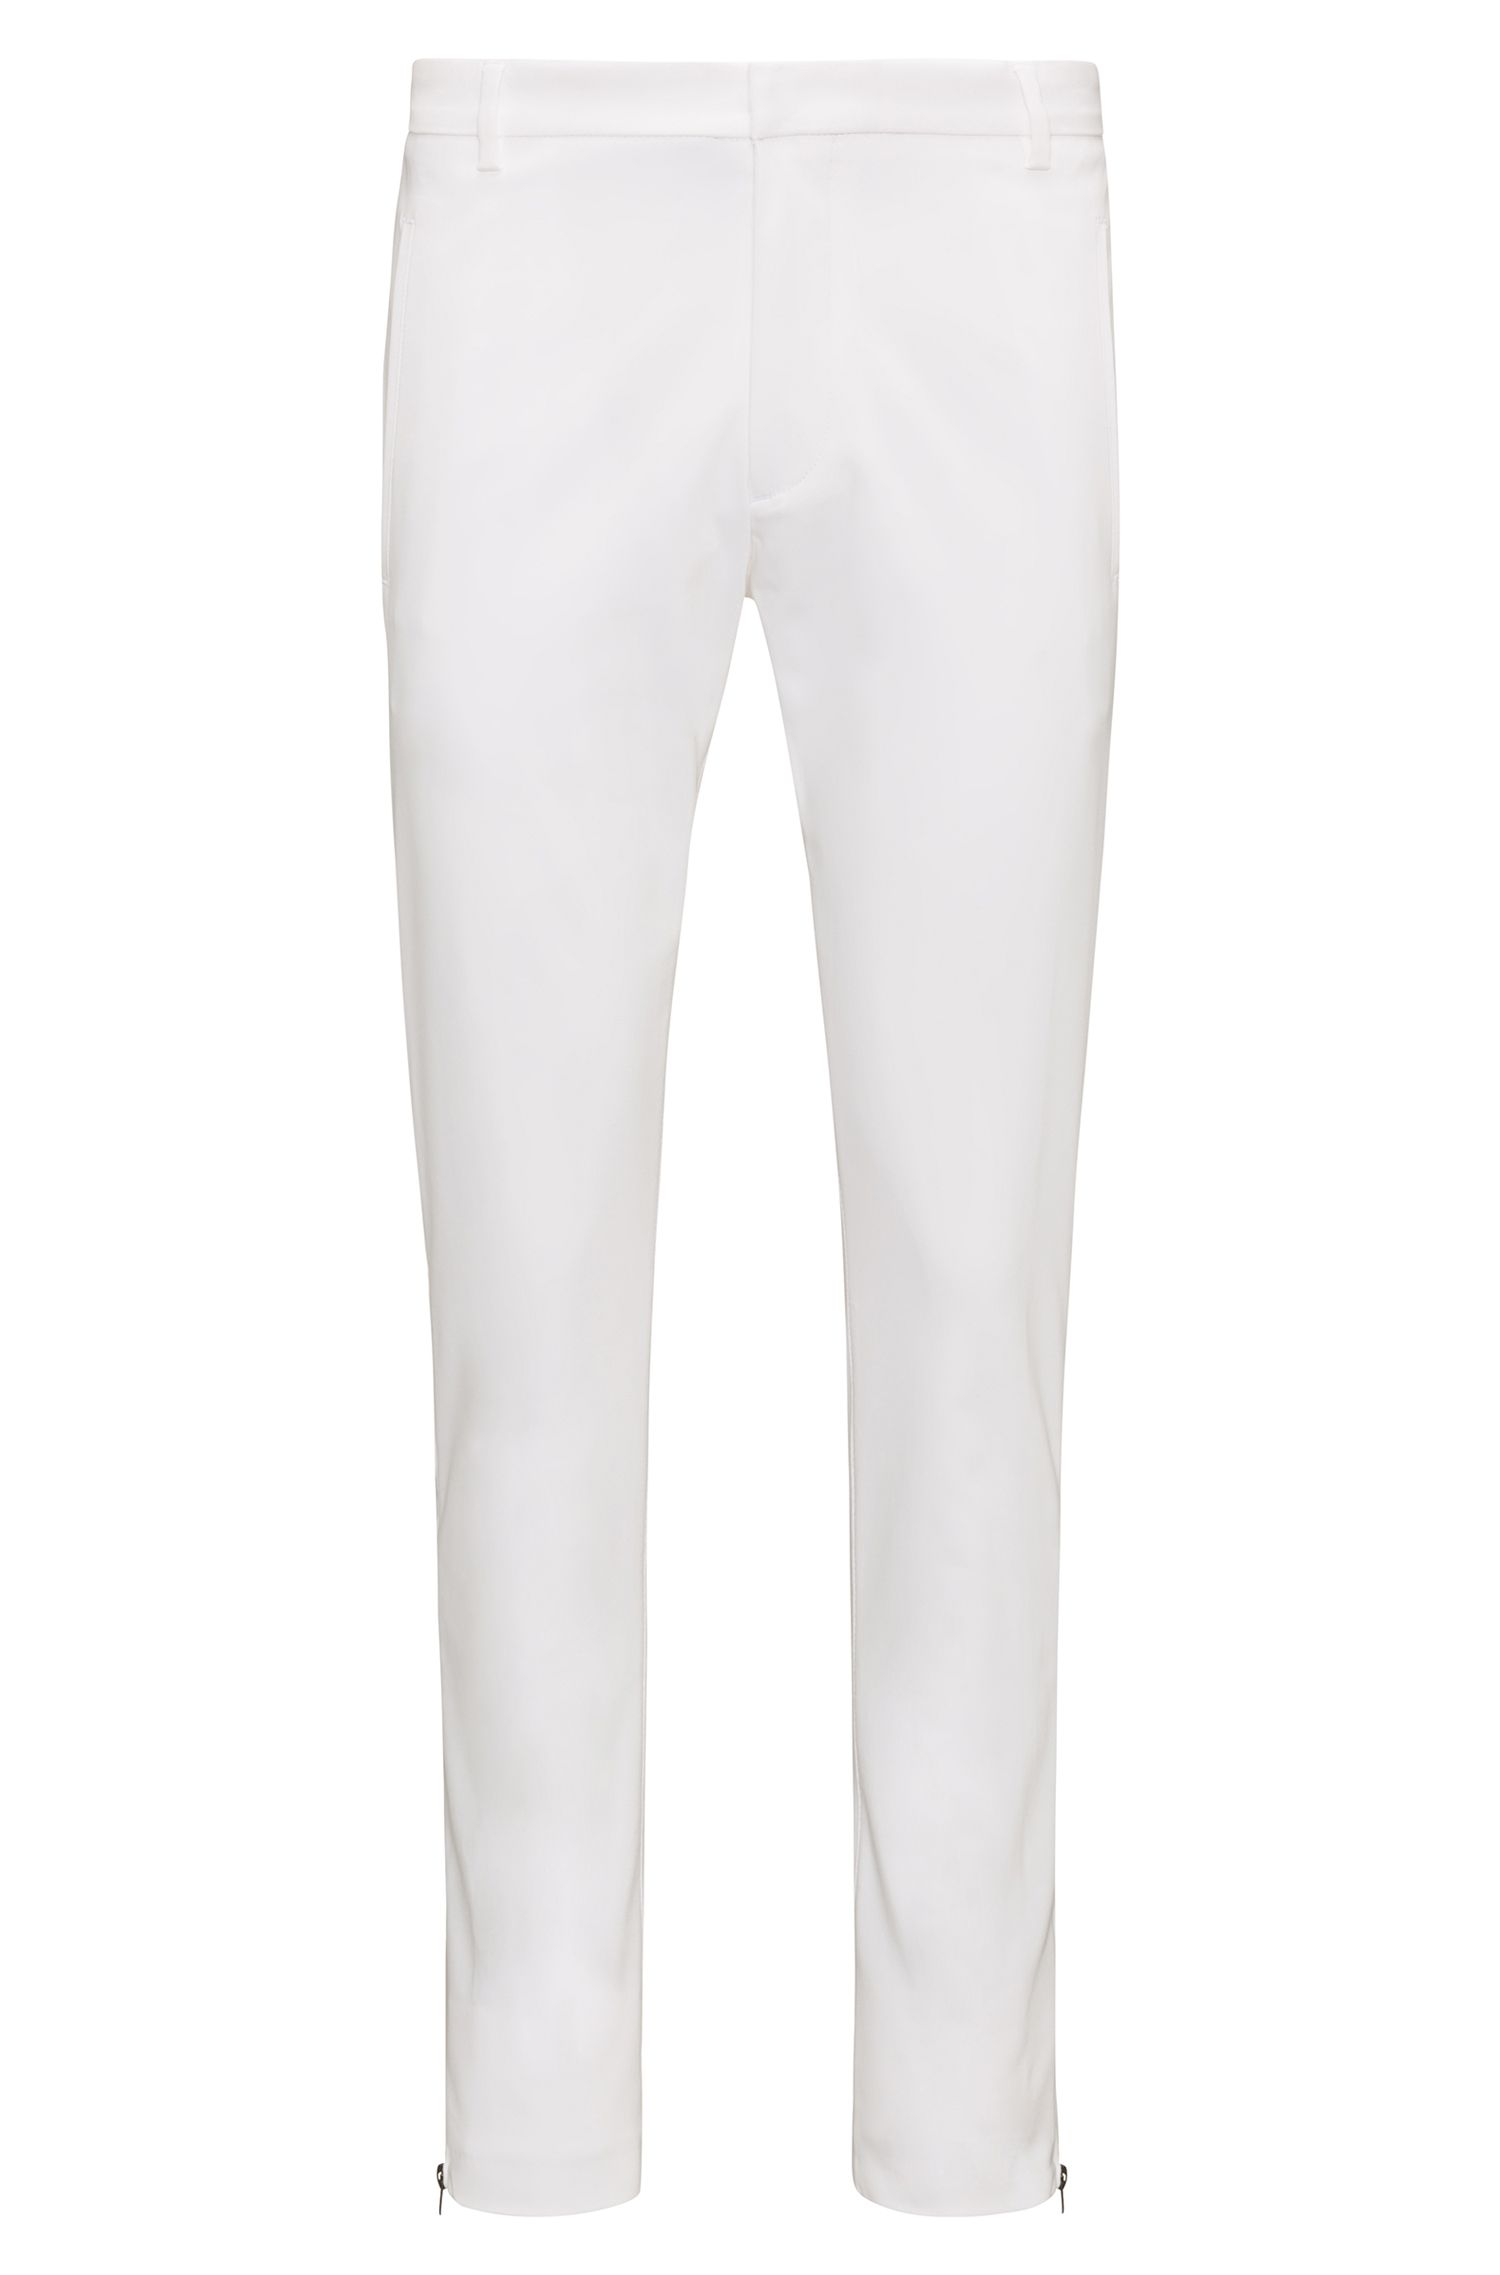 Extra-slim-fit cotton-blend trousers with zipped legs, White